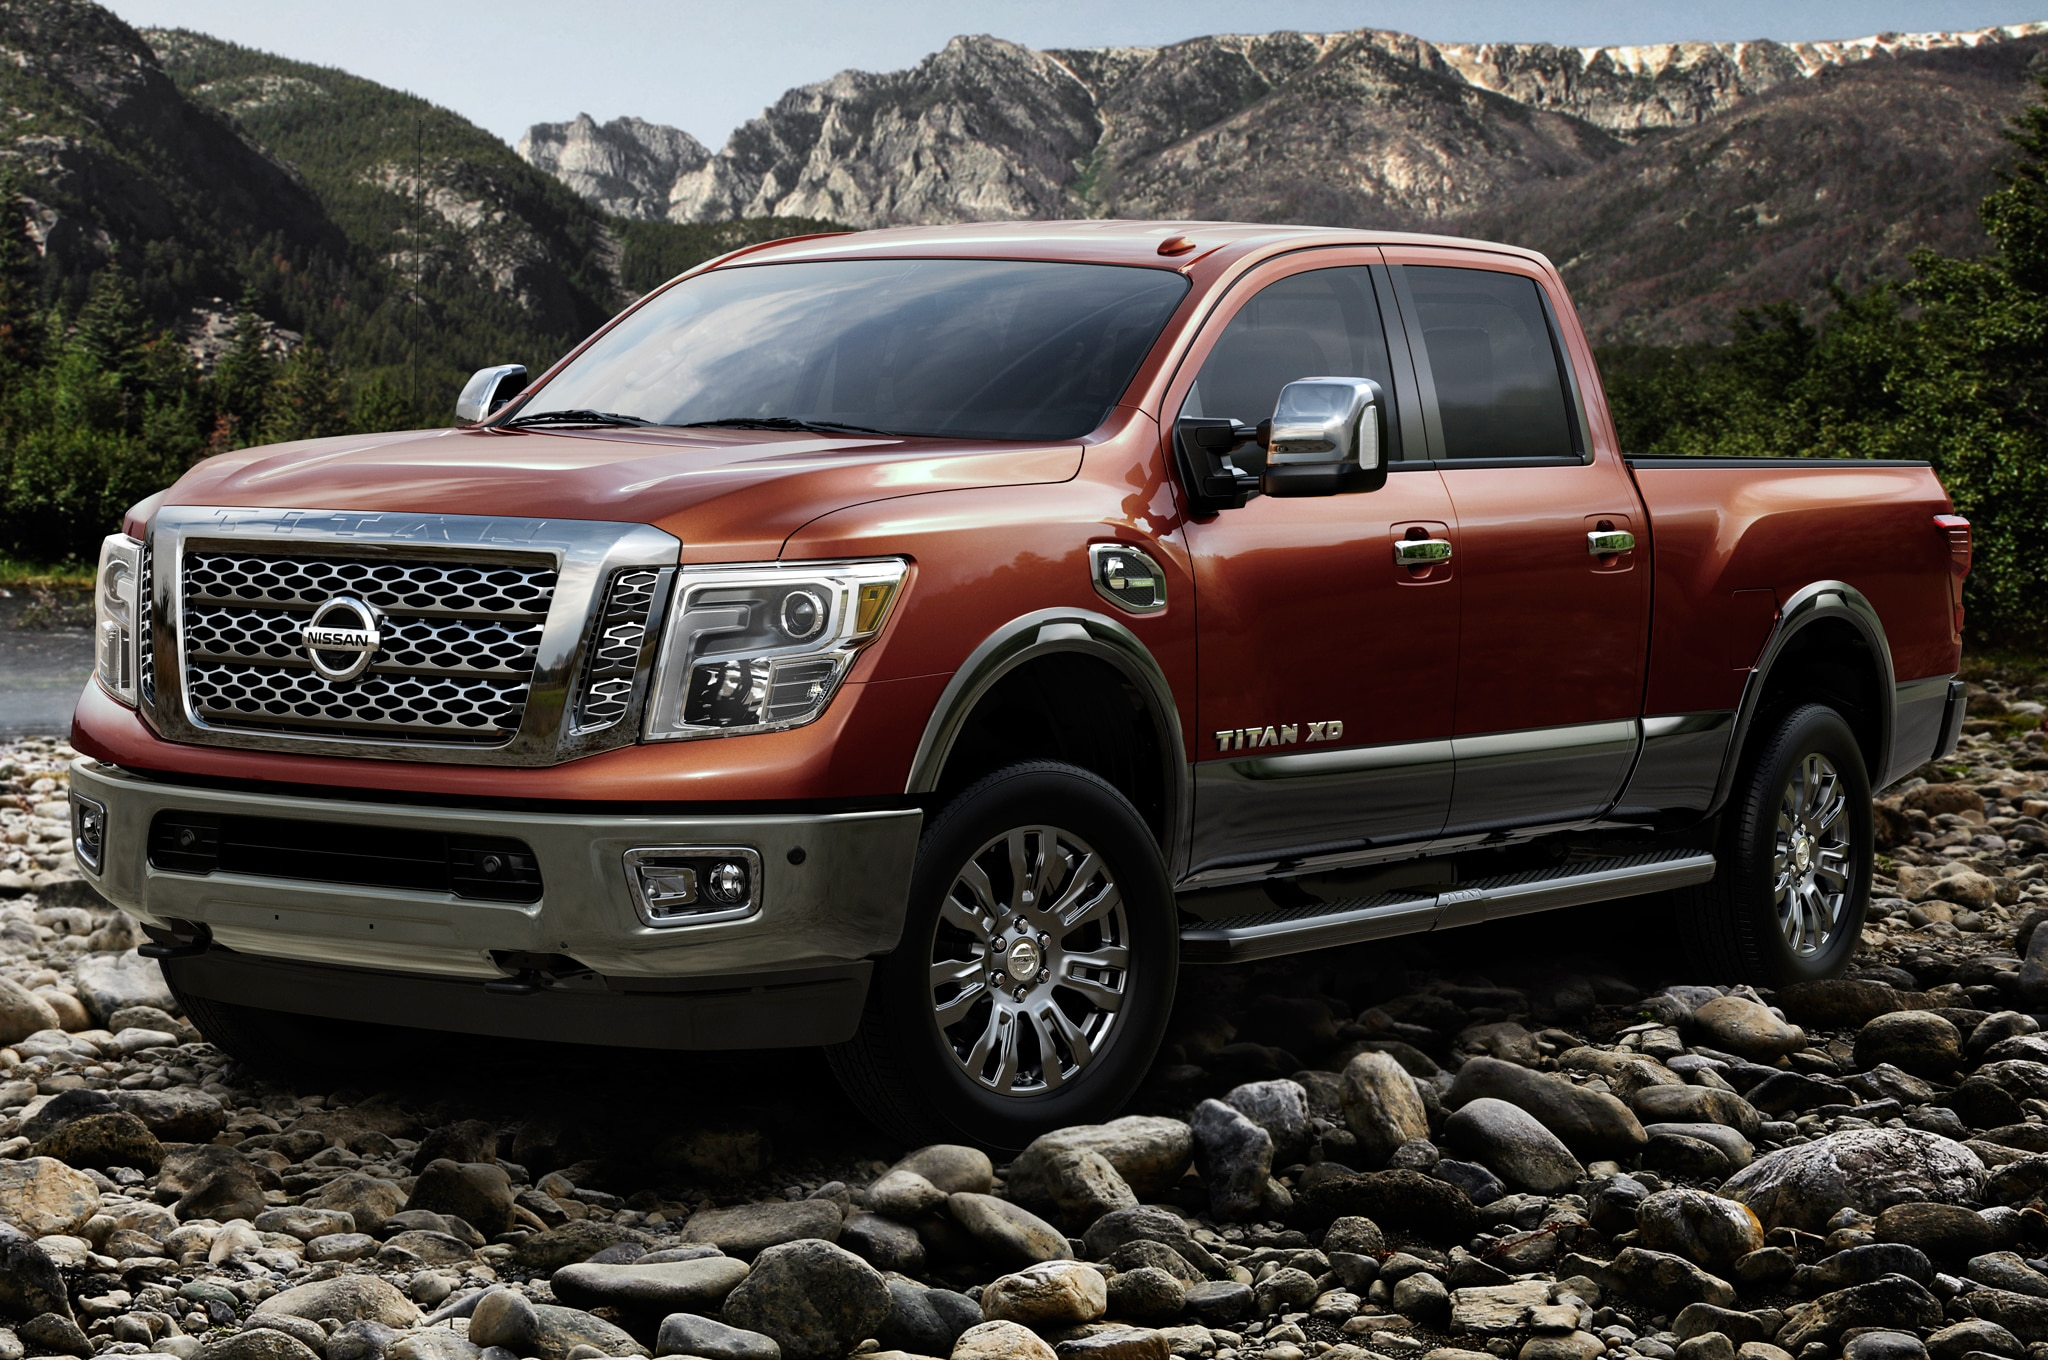 2016 Nissan Titan XD Gas V-8 Review